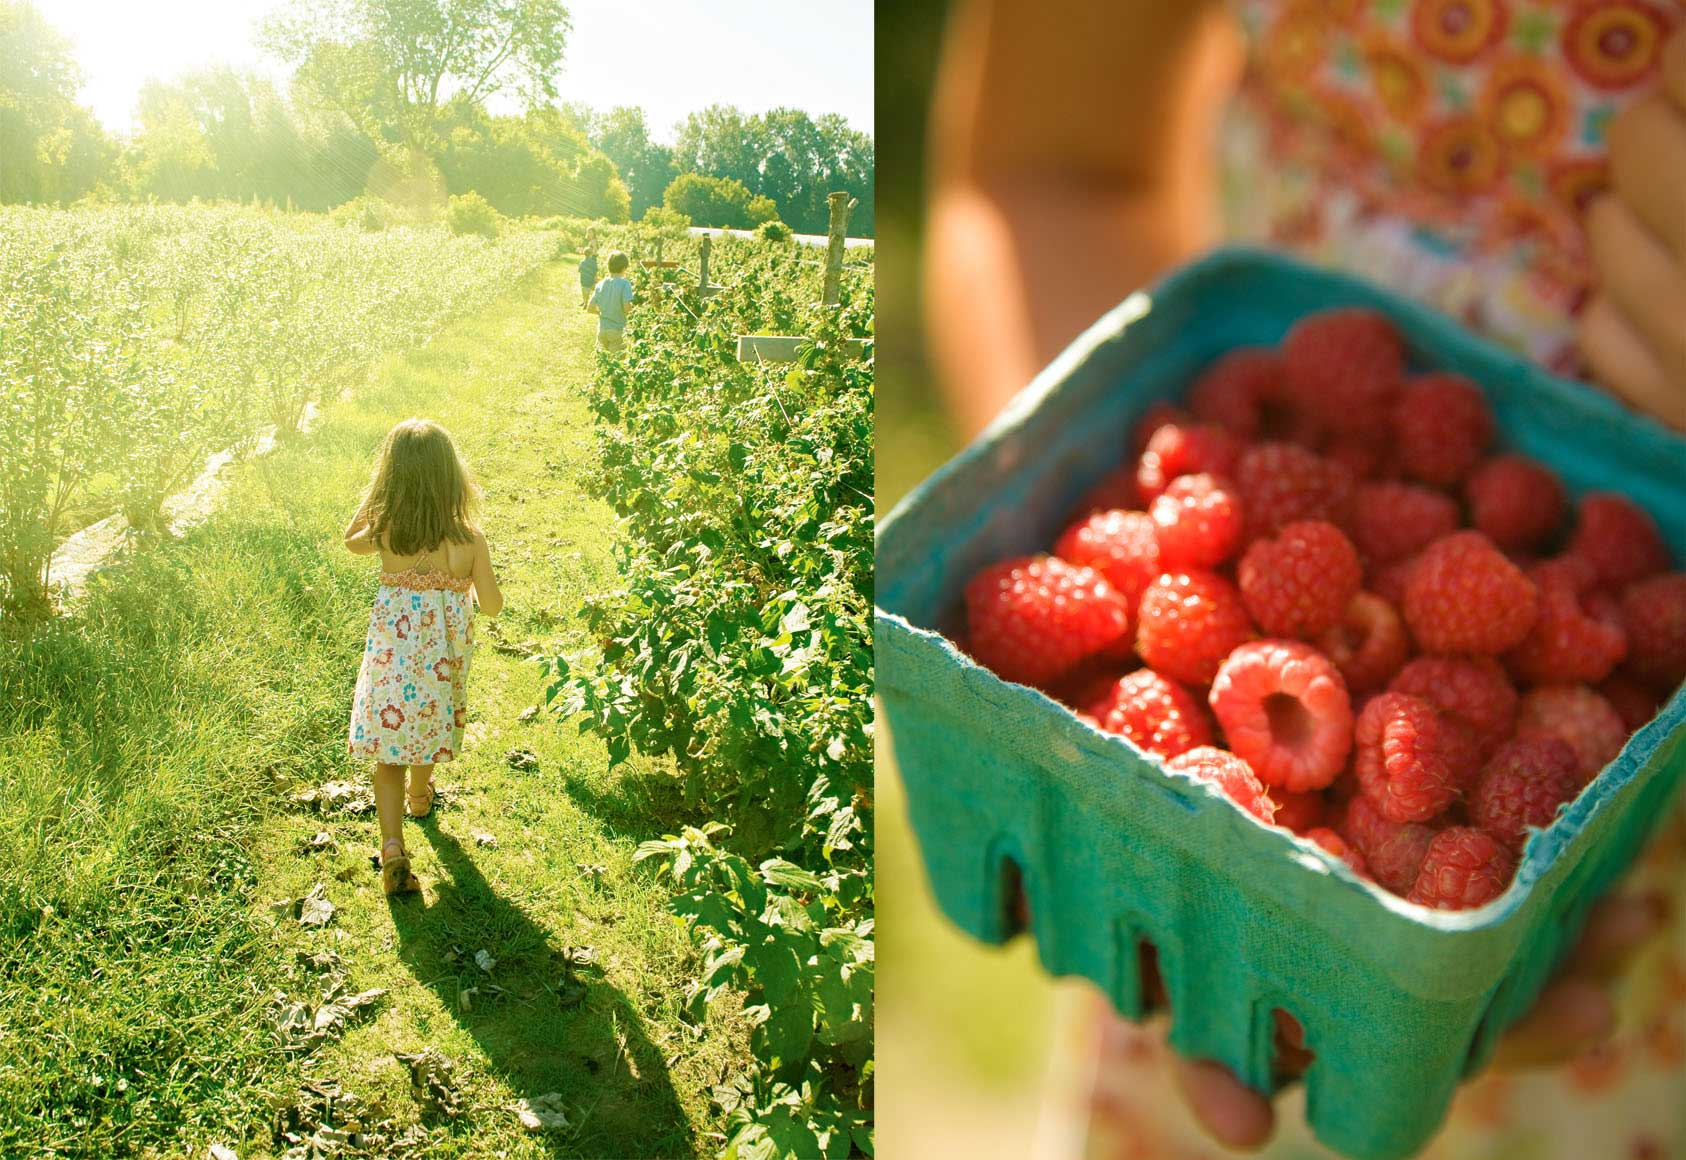 berry-picking-yellow-sunny-girl